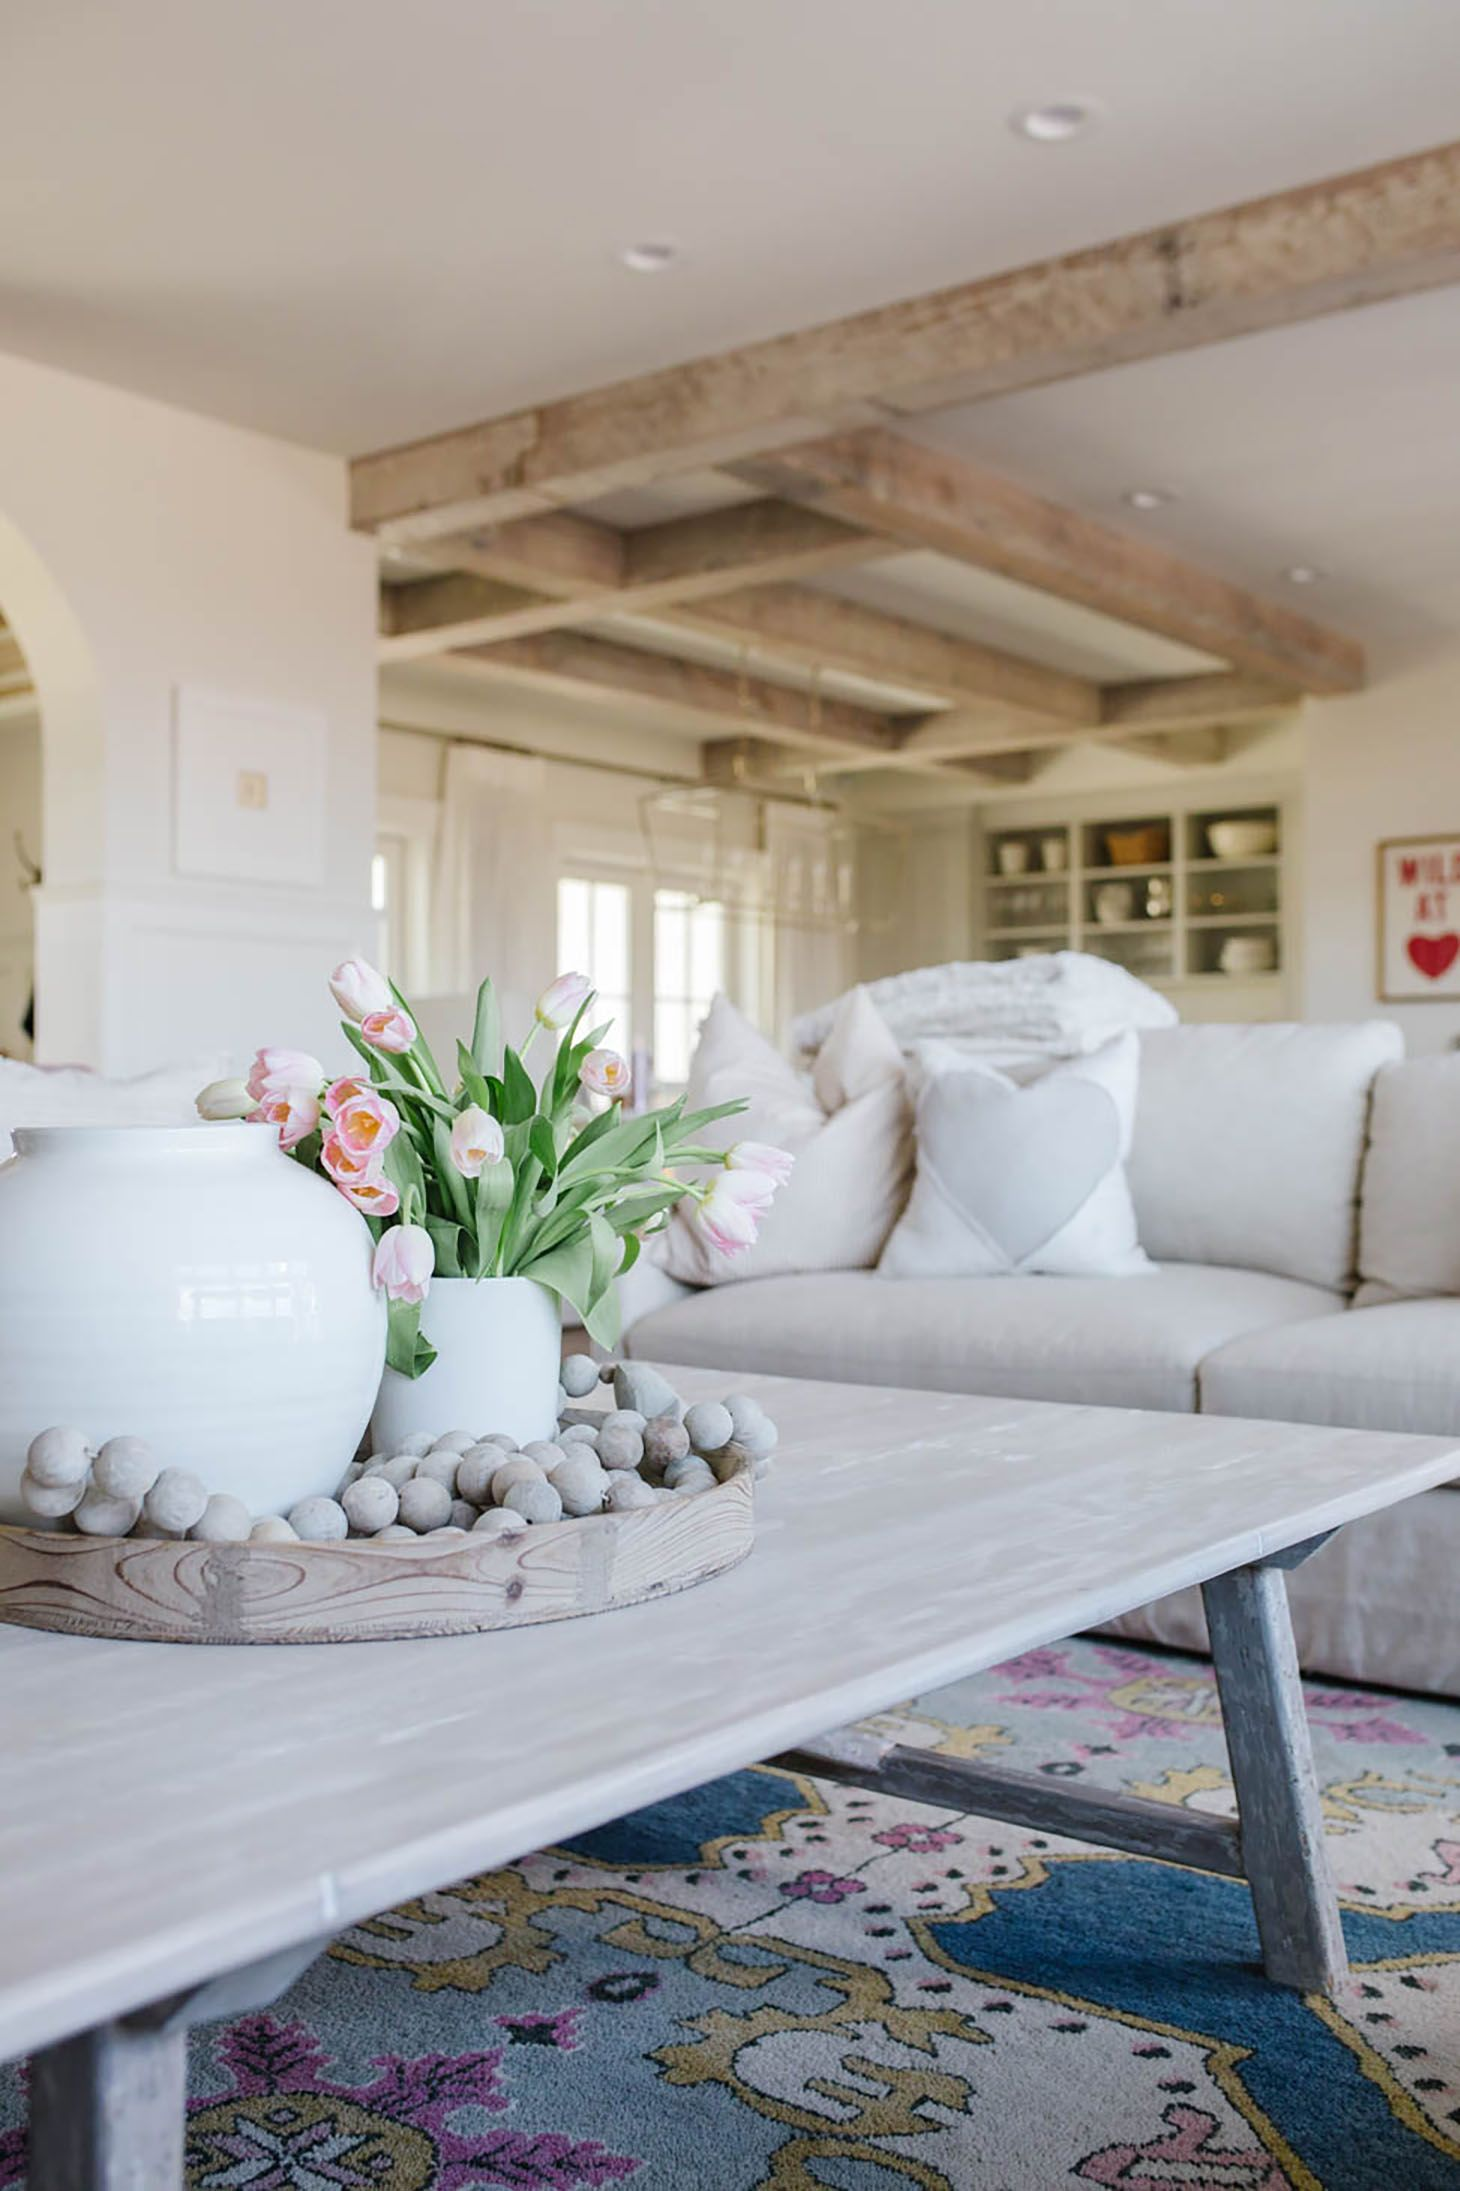 My Favourite Rugs Indoor And Outdoor Jillian Harris Home Rugs Home